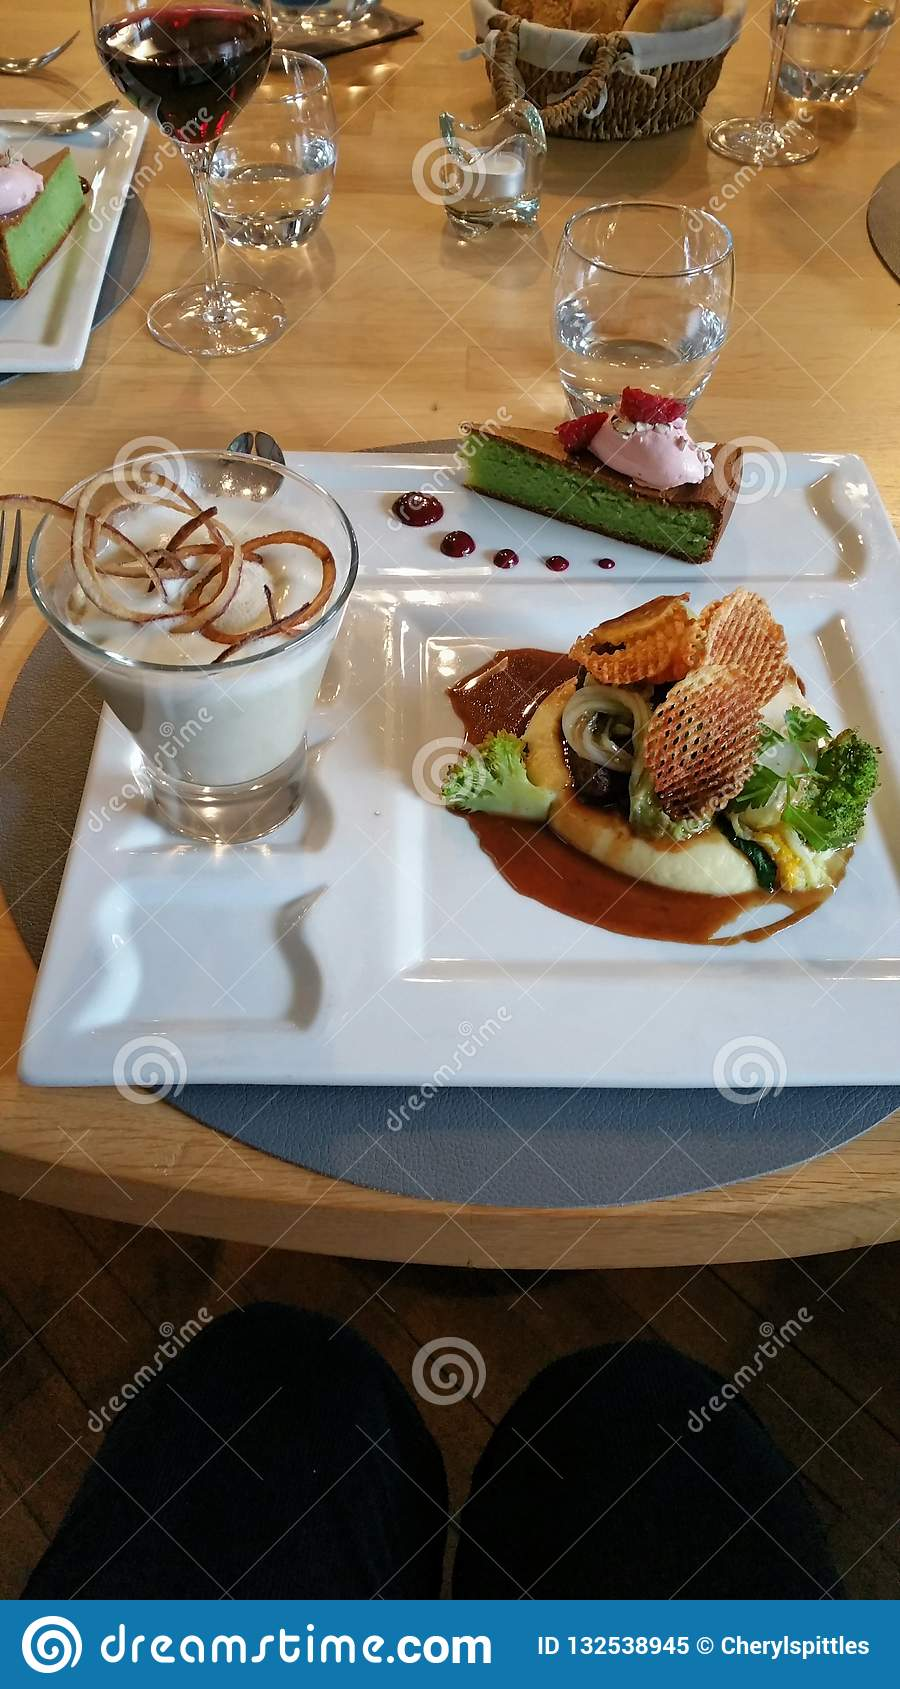 Lo Ng At A Restaurant Table Setting With Three Course Meal Served On White Square Porcelain Plate Containing Soup In Tall Glmain Course On Right And